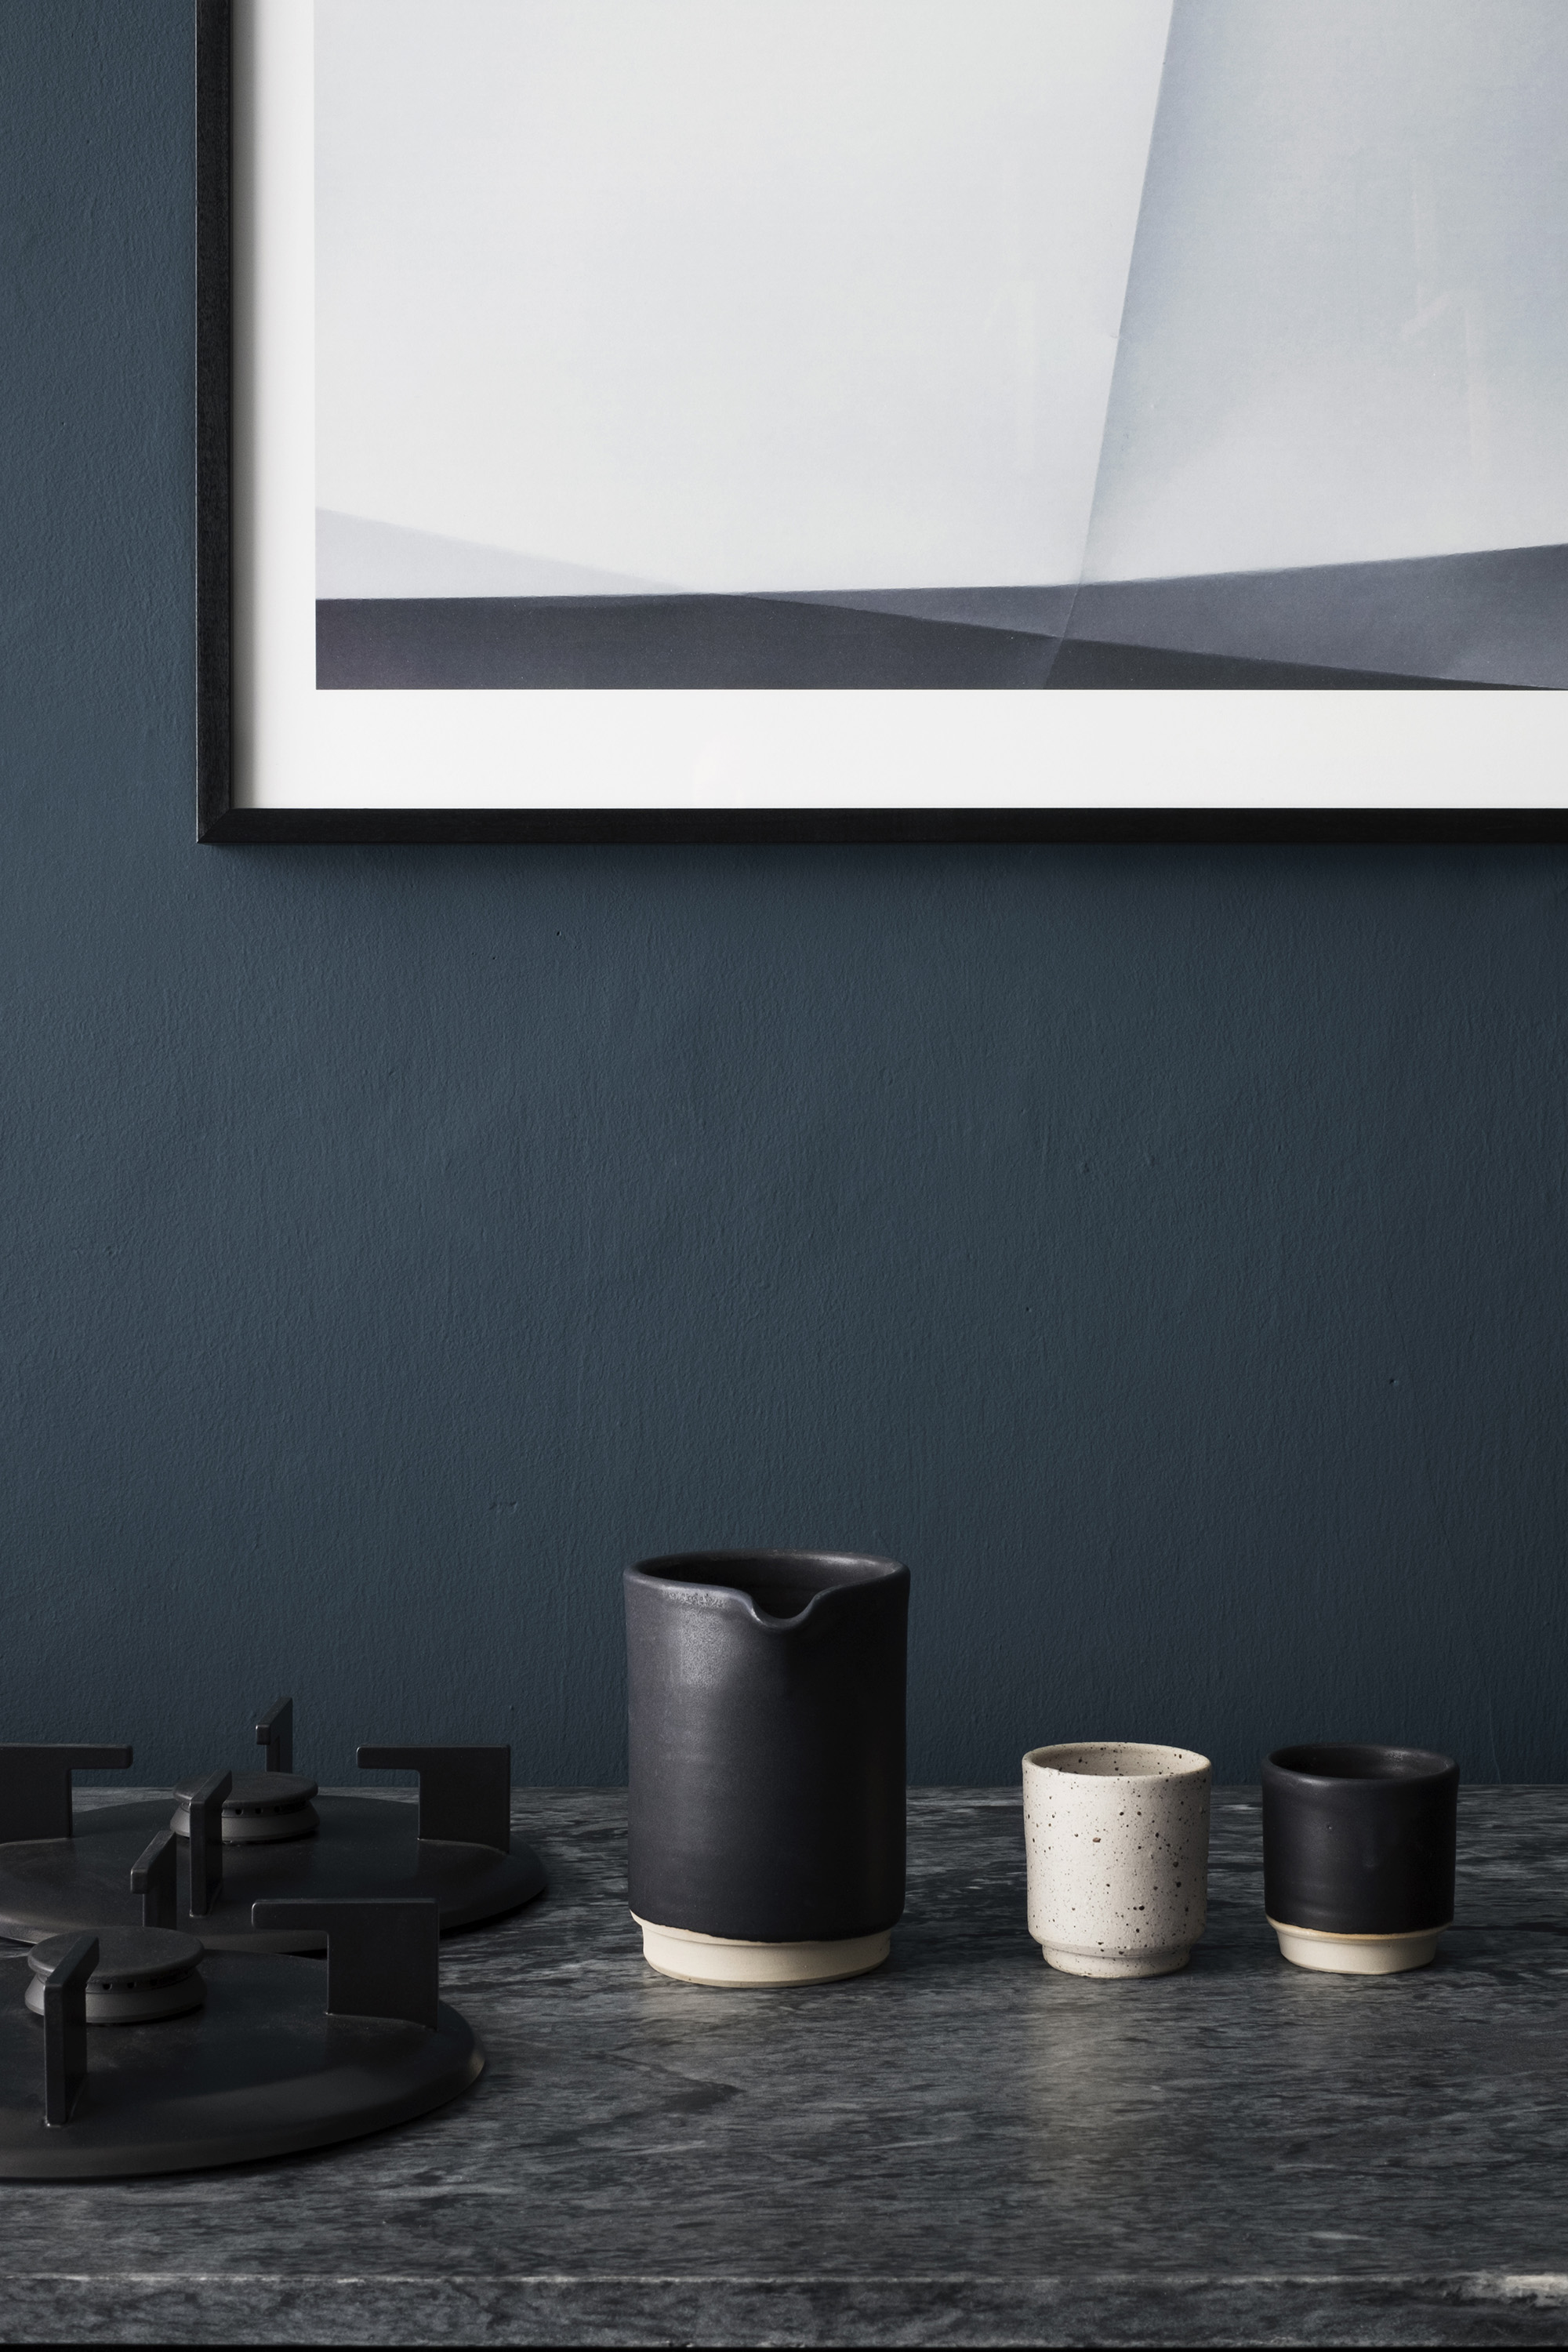 A Scandinavian blue kitchen